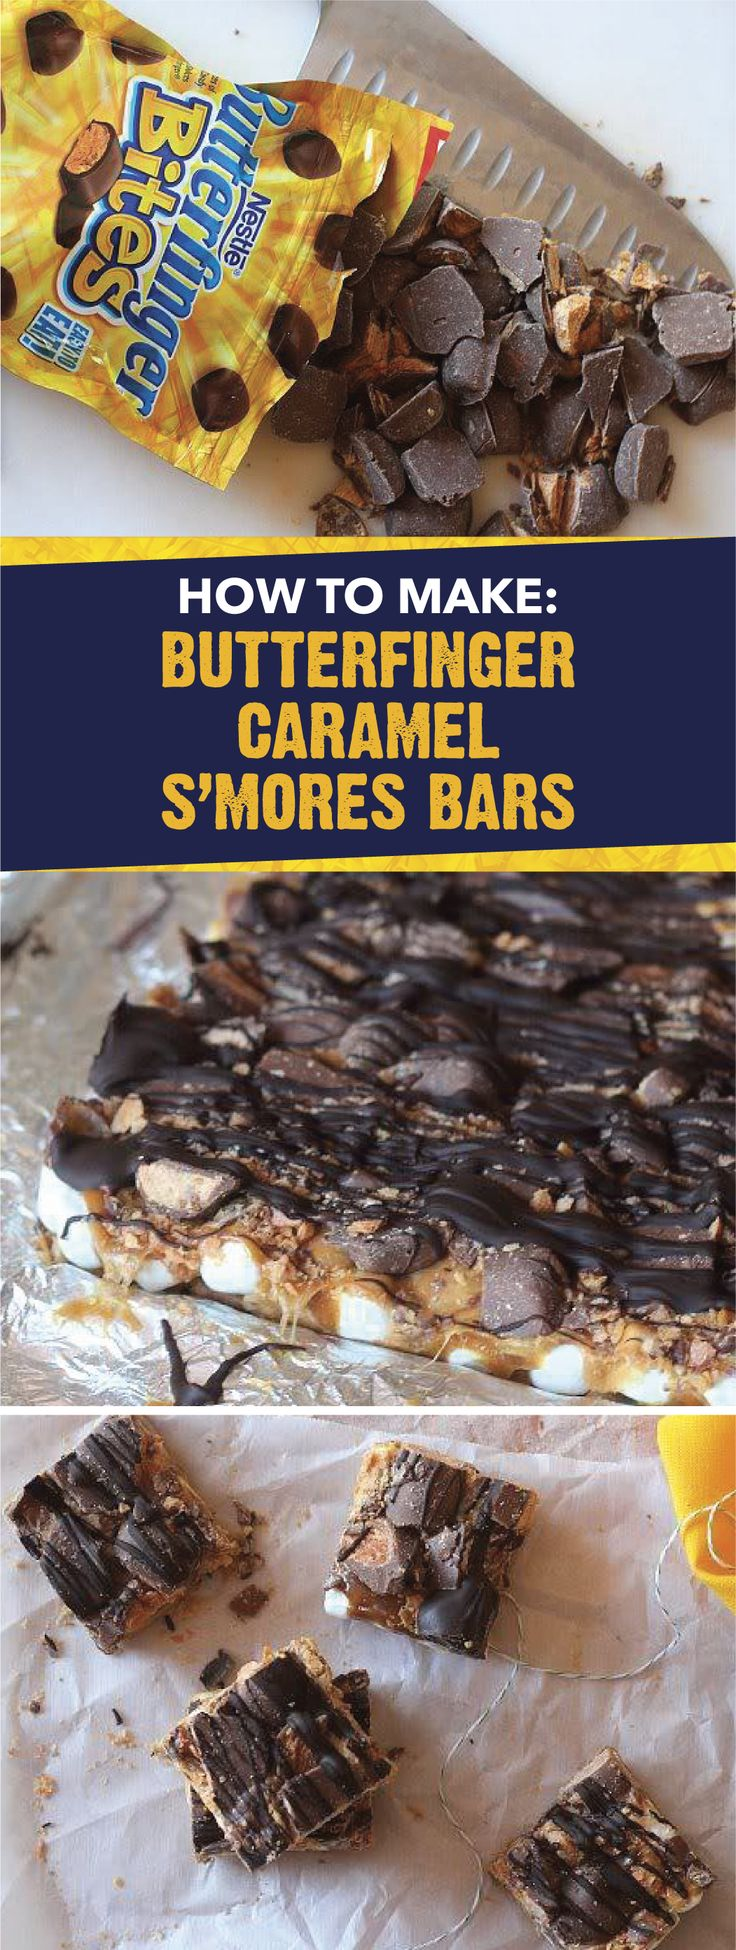 Rather than make s'mores at your next bonfire, bake this recipe for Butterfinger Caramel S'mores Bars. This flavorful dessert is filled with crispety, crunchety, peanut-buttery BUTTERFINGER® Bites, caramel bits, mini marshmallows, graham crackers and more! Click here for step-by-step instructions on how to make this tasty treat.